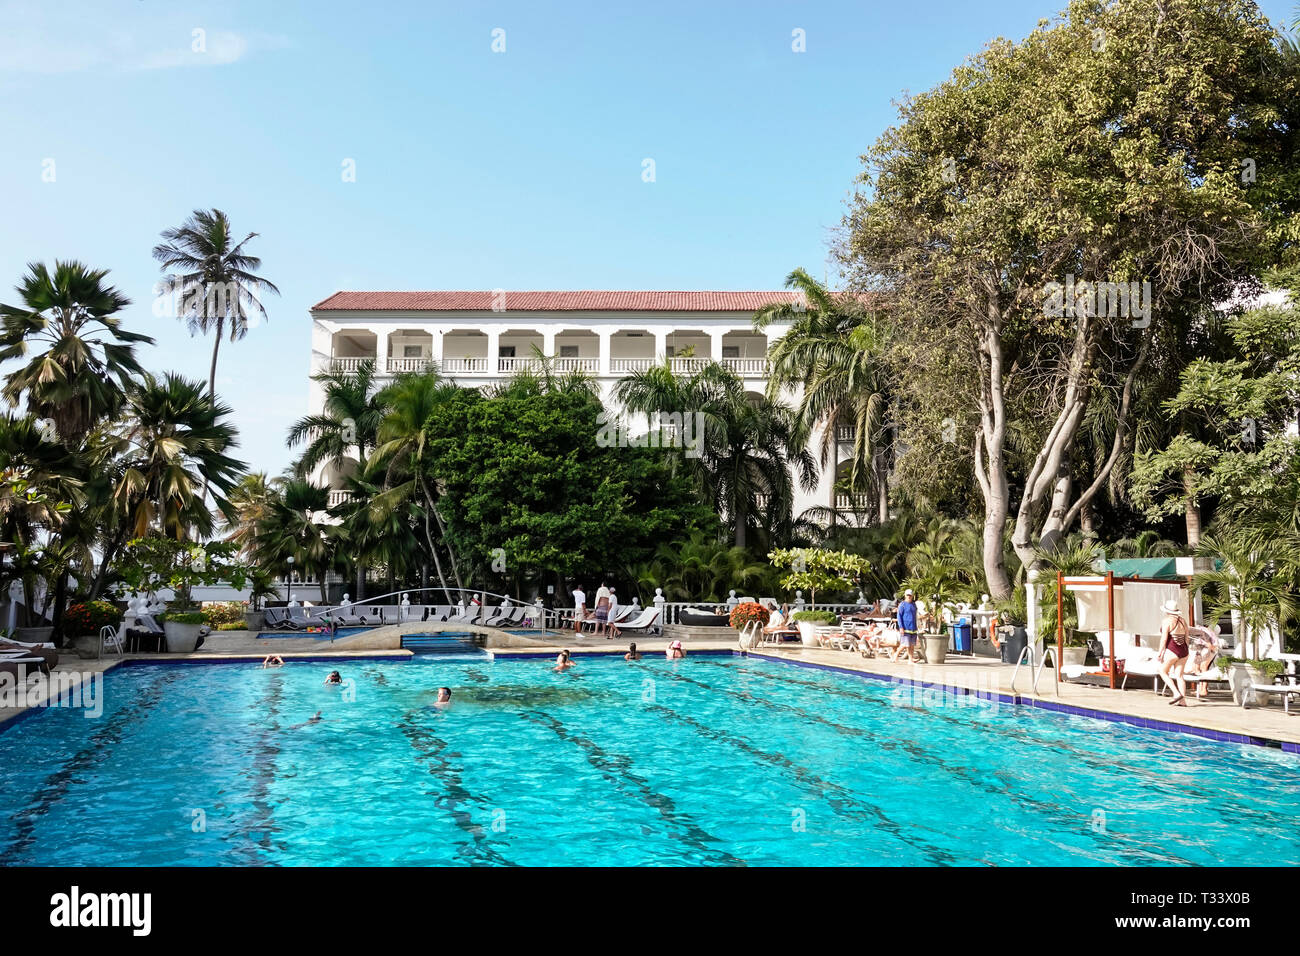 Cartagena Colombia Bocagrande Hotel Caribe hotel swimming pool area upscale luxury guest - Stock Image